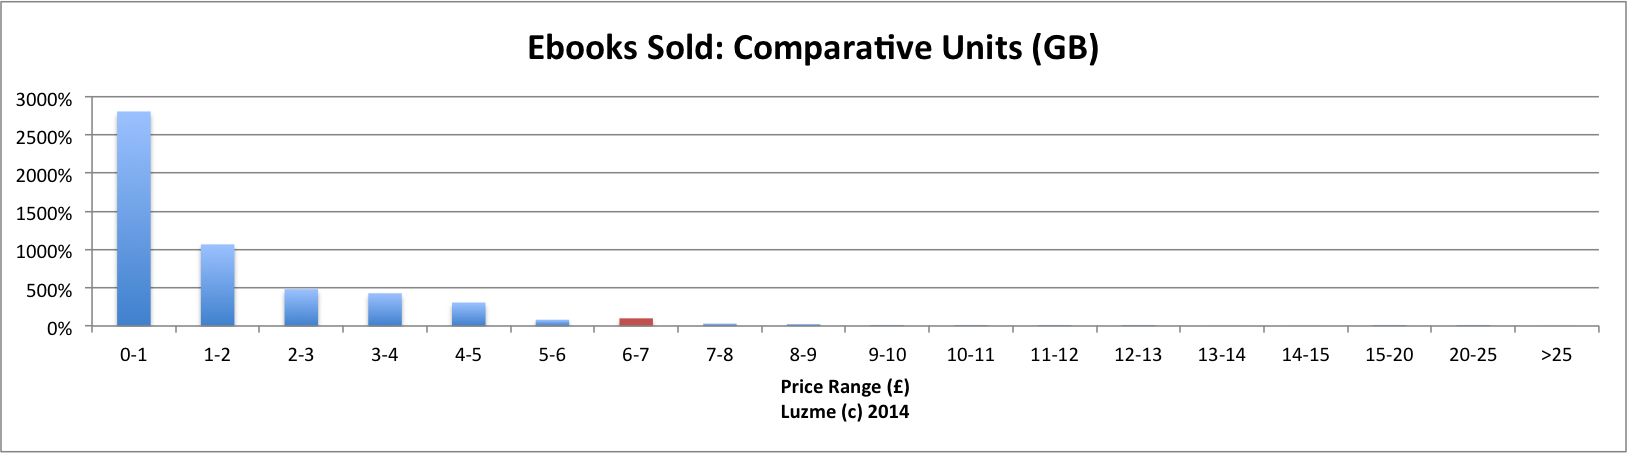 luzme-2013-comparative-units-gb